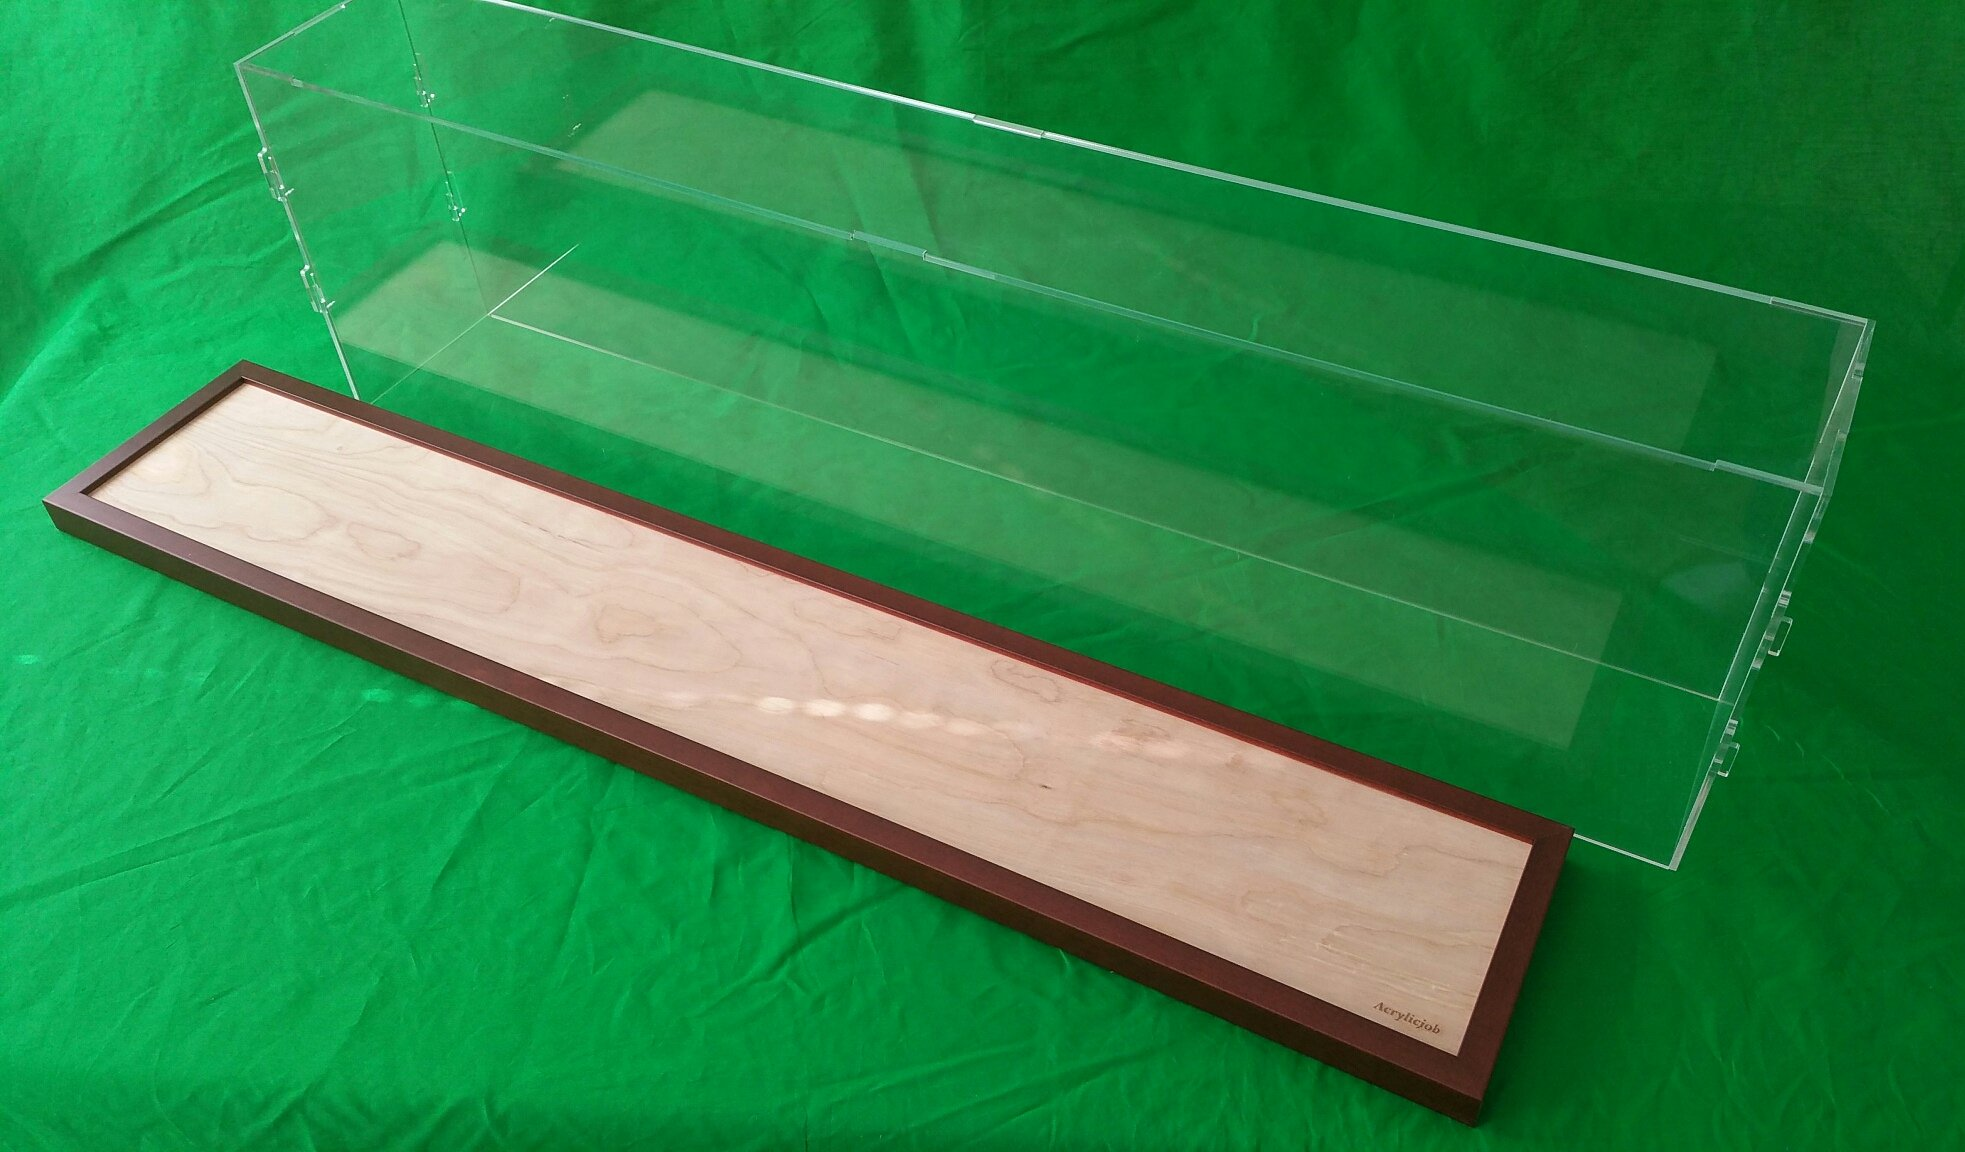 42''L x 6''W x 12''H Display Case Box for Model Cruise Ships and Ocean Liner LGB and G Scale Trains 1/32 1/23 Plexiglass Acrylic by Acrylicjob (Image #6)